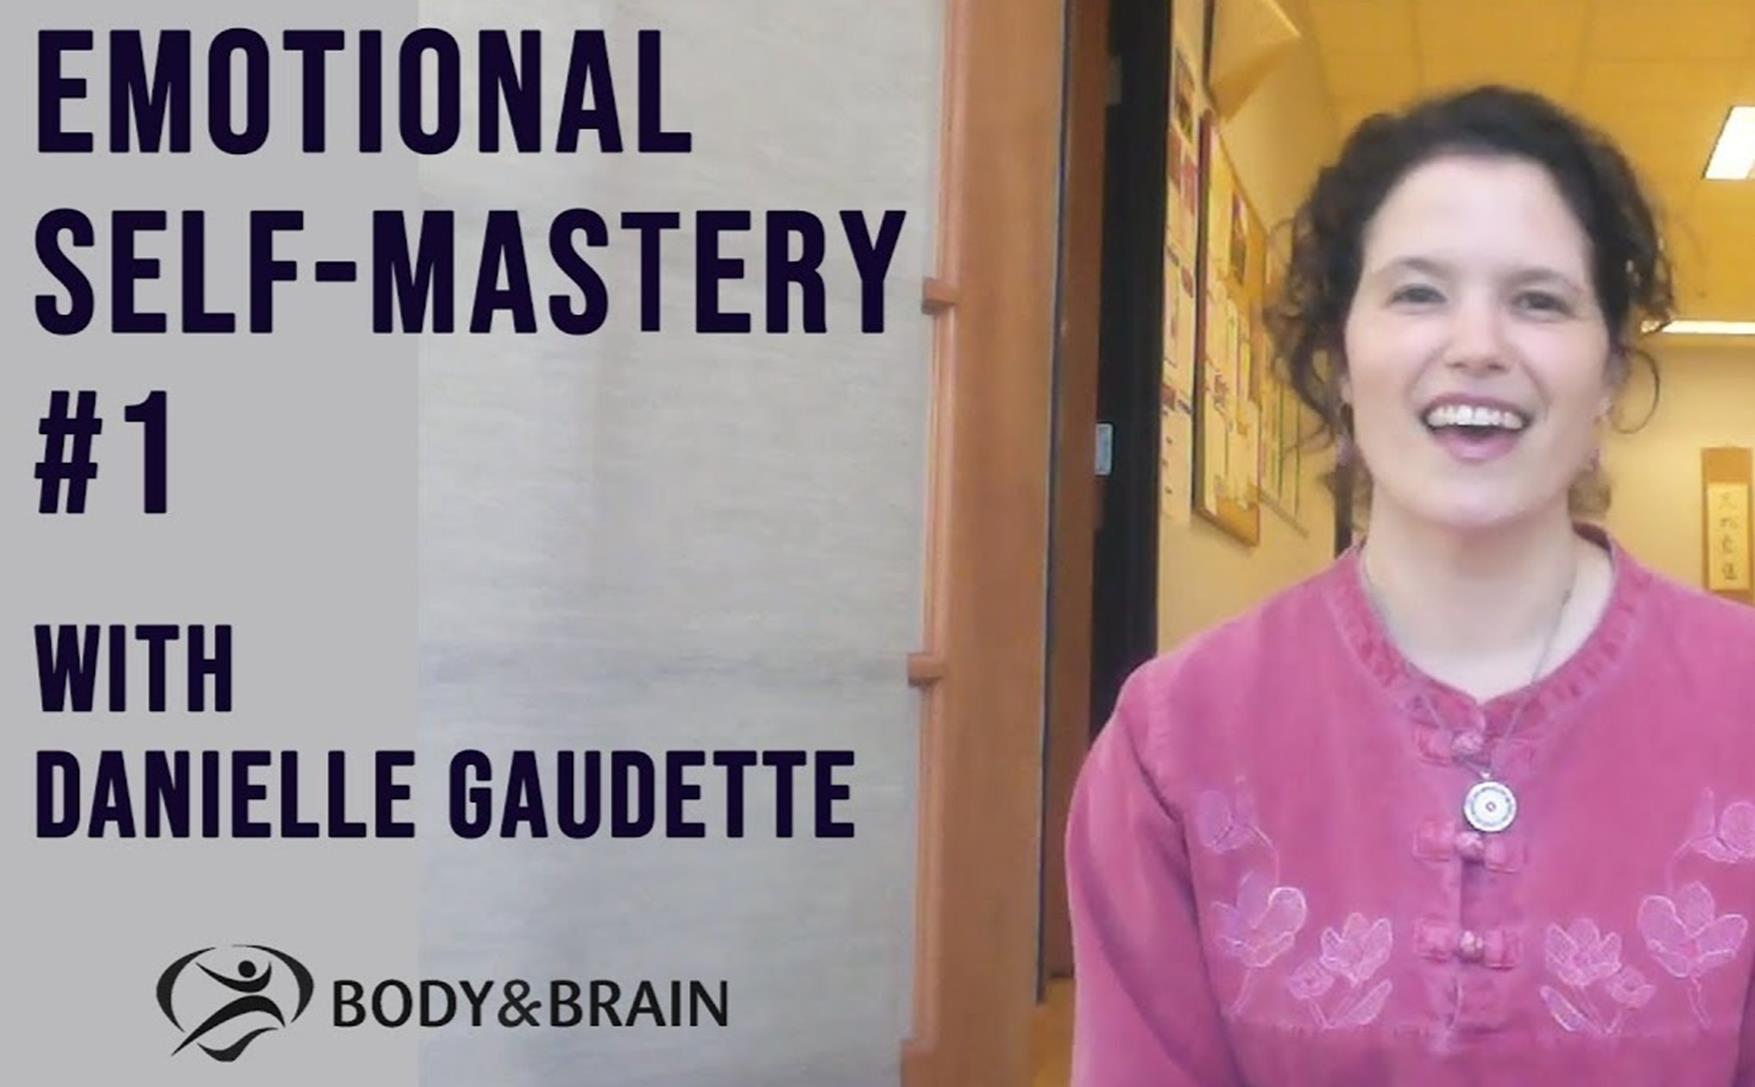 Emotional SelfMastery with Danielle Gaudette